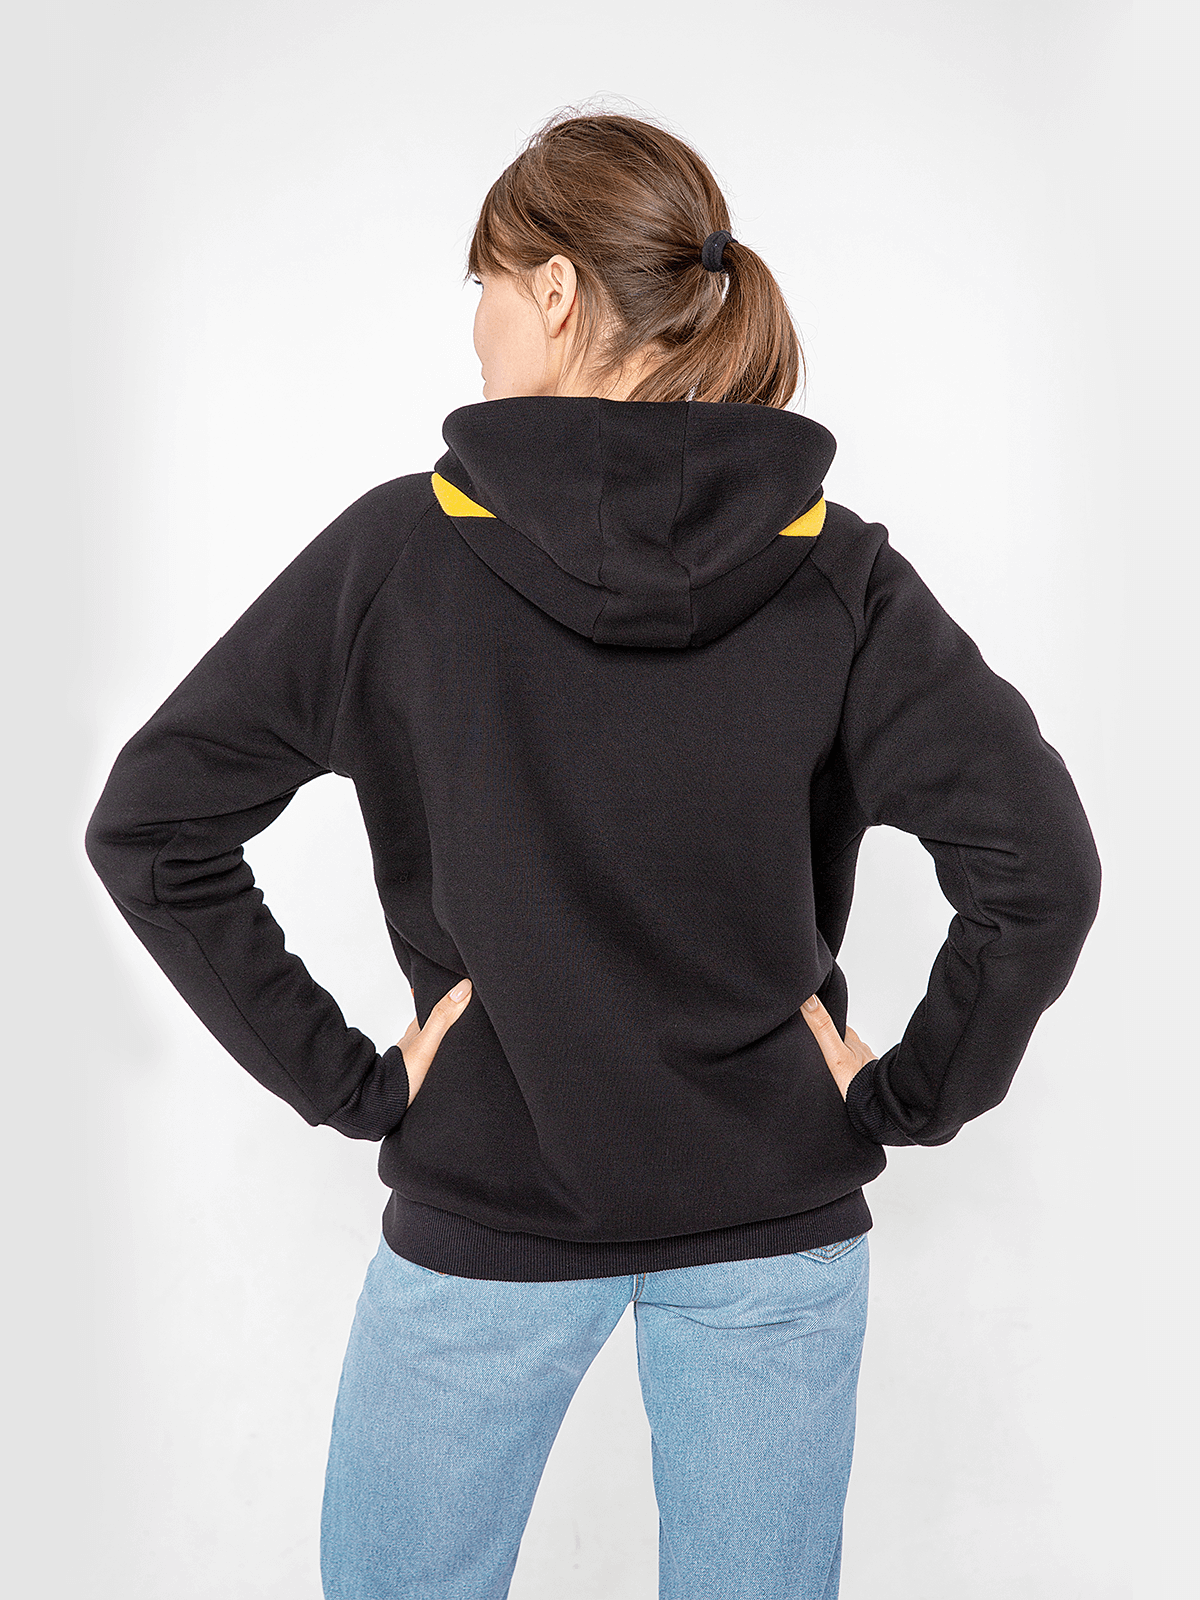 Women's Hoodie Petros. Color black.  Don't worry about the universal size.